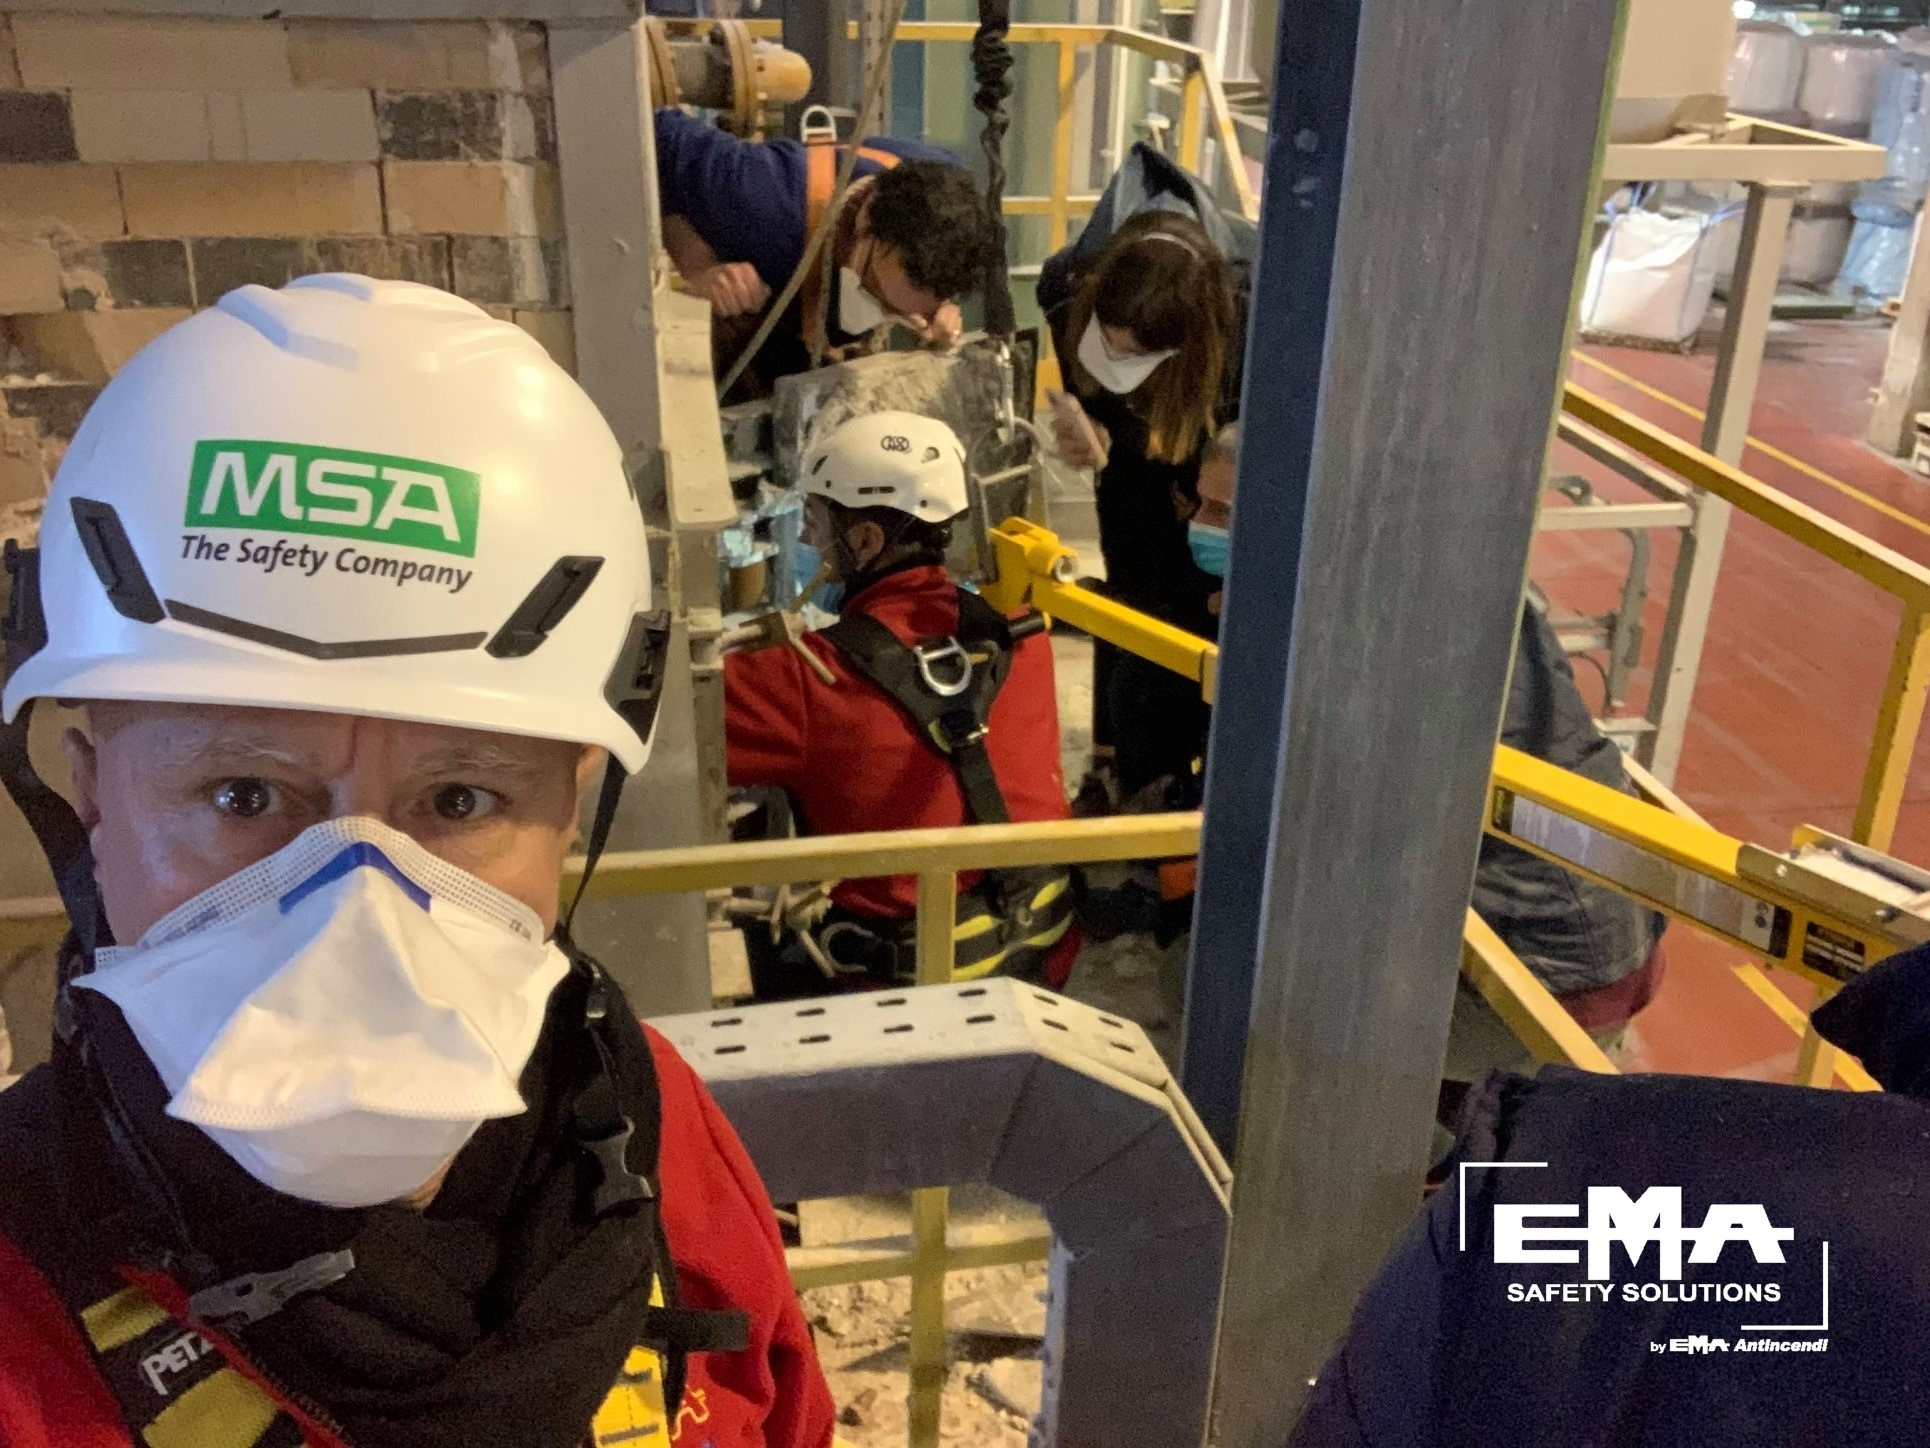 EMA Safety Solutions by Ema Antincendi 6